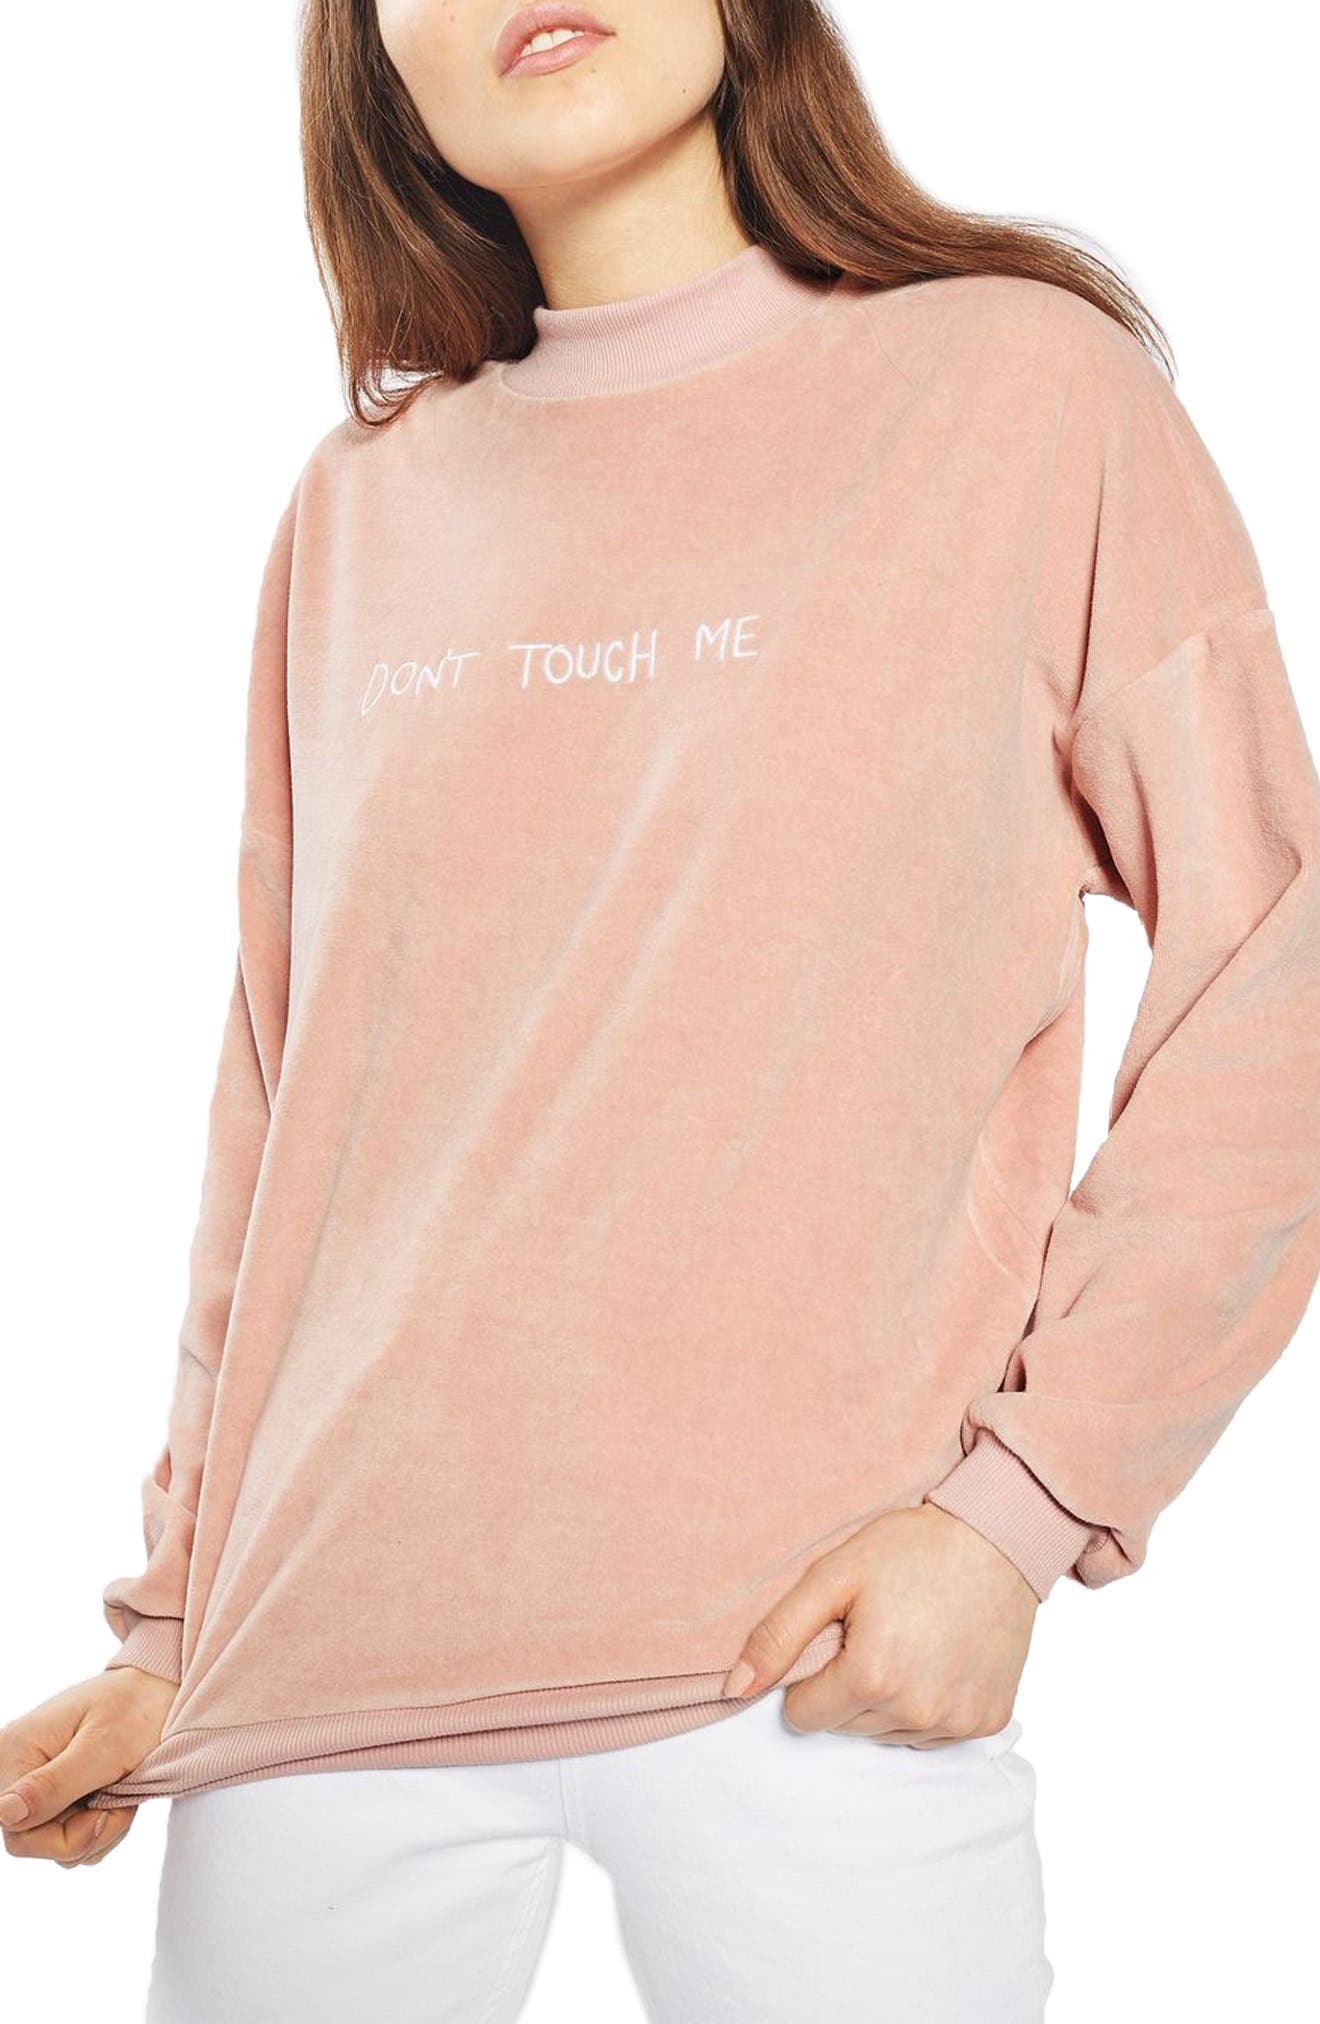 Alternate Image 1 Selected - Topshop by Tee & Cake Don't Touch Me Velvet Sweatshirt